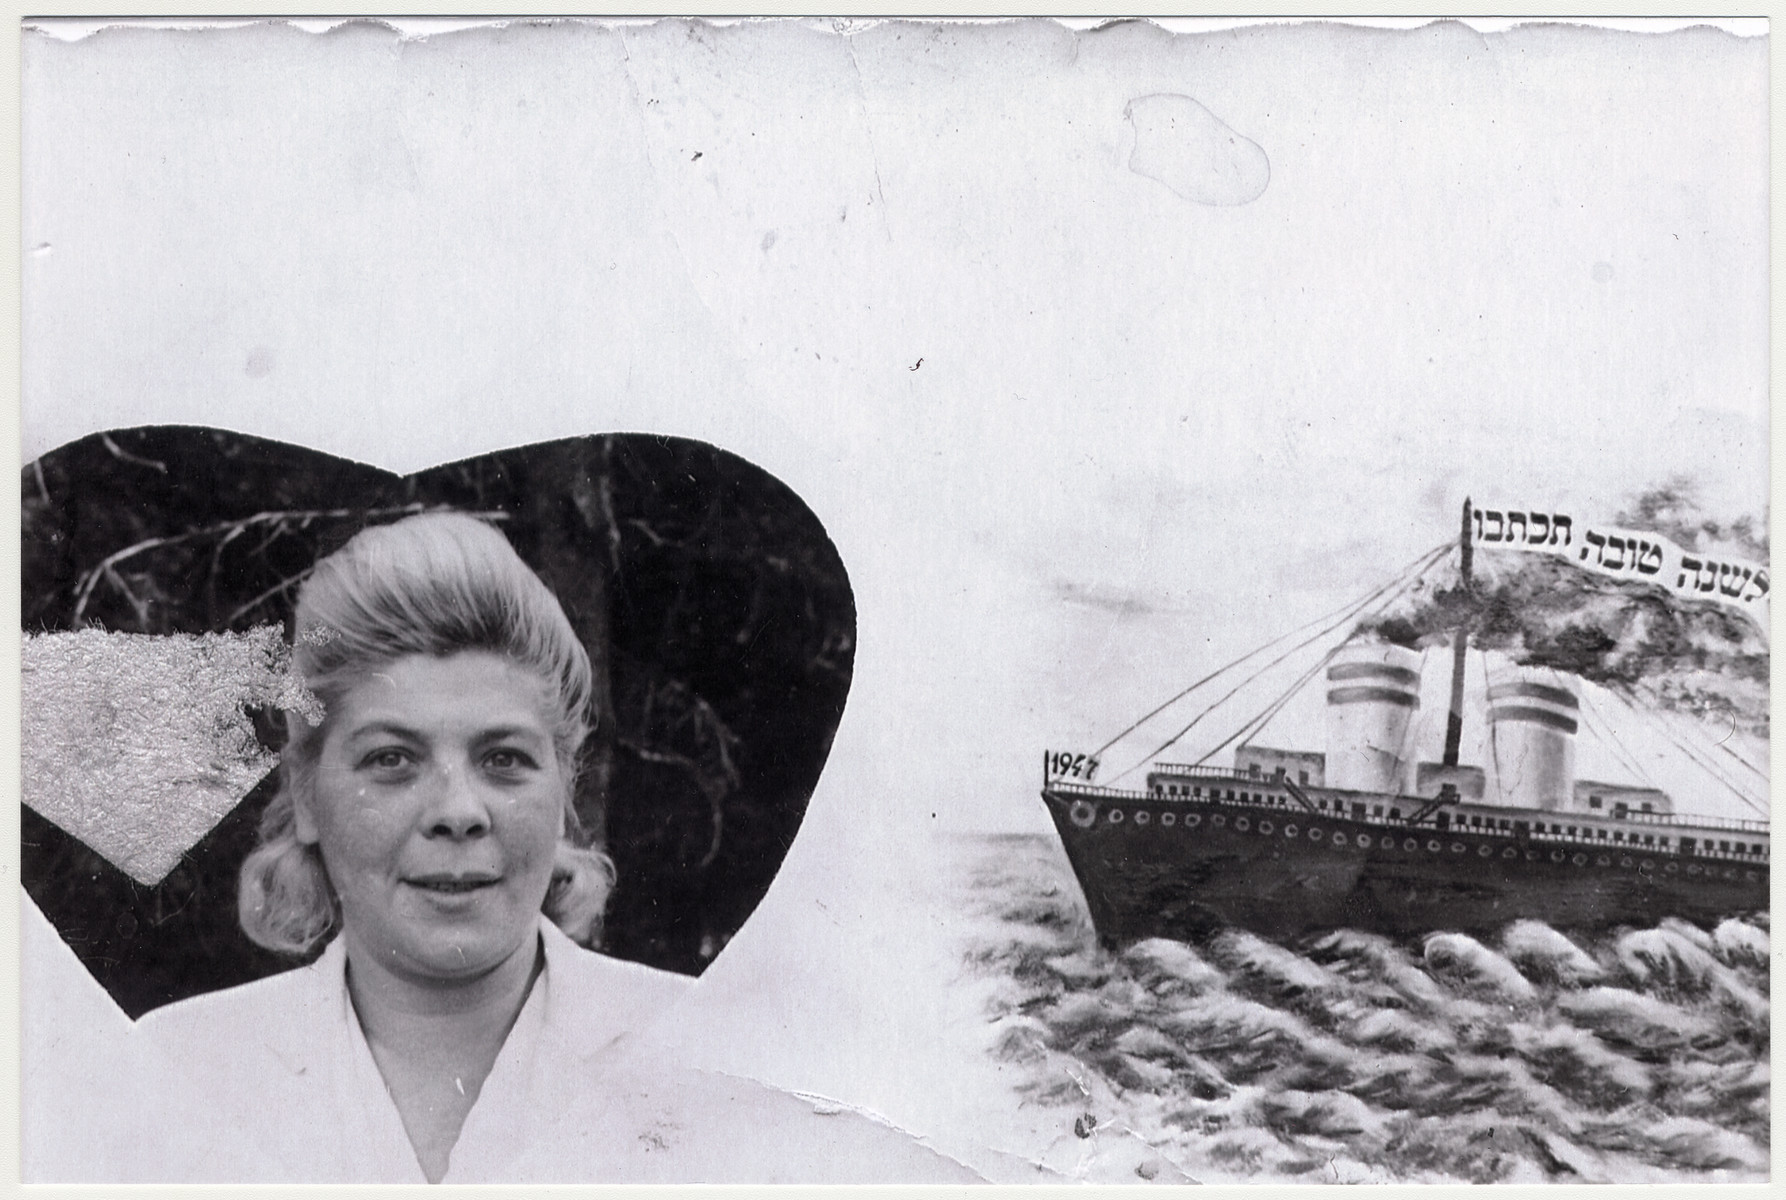 Jewish New Year's card illustrated with a boat and sent byJenny Sofia Kalkopf possibly from the Foehrenwald displaced persons camp.  Jenny Sofia Kalkopf was born in Zarki in 1906.  She was the only known survivor from the Kalkopf family.